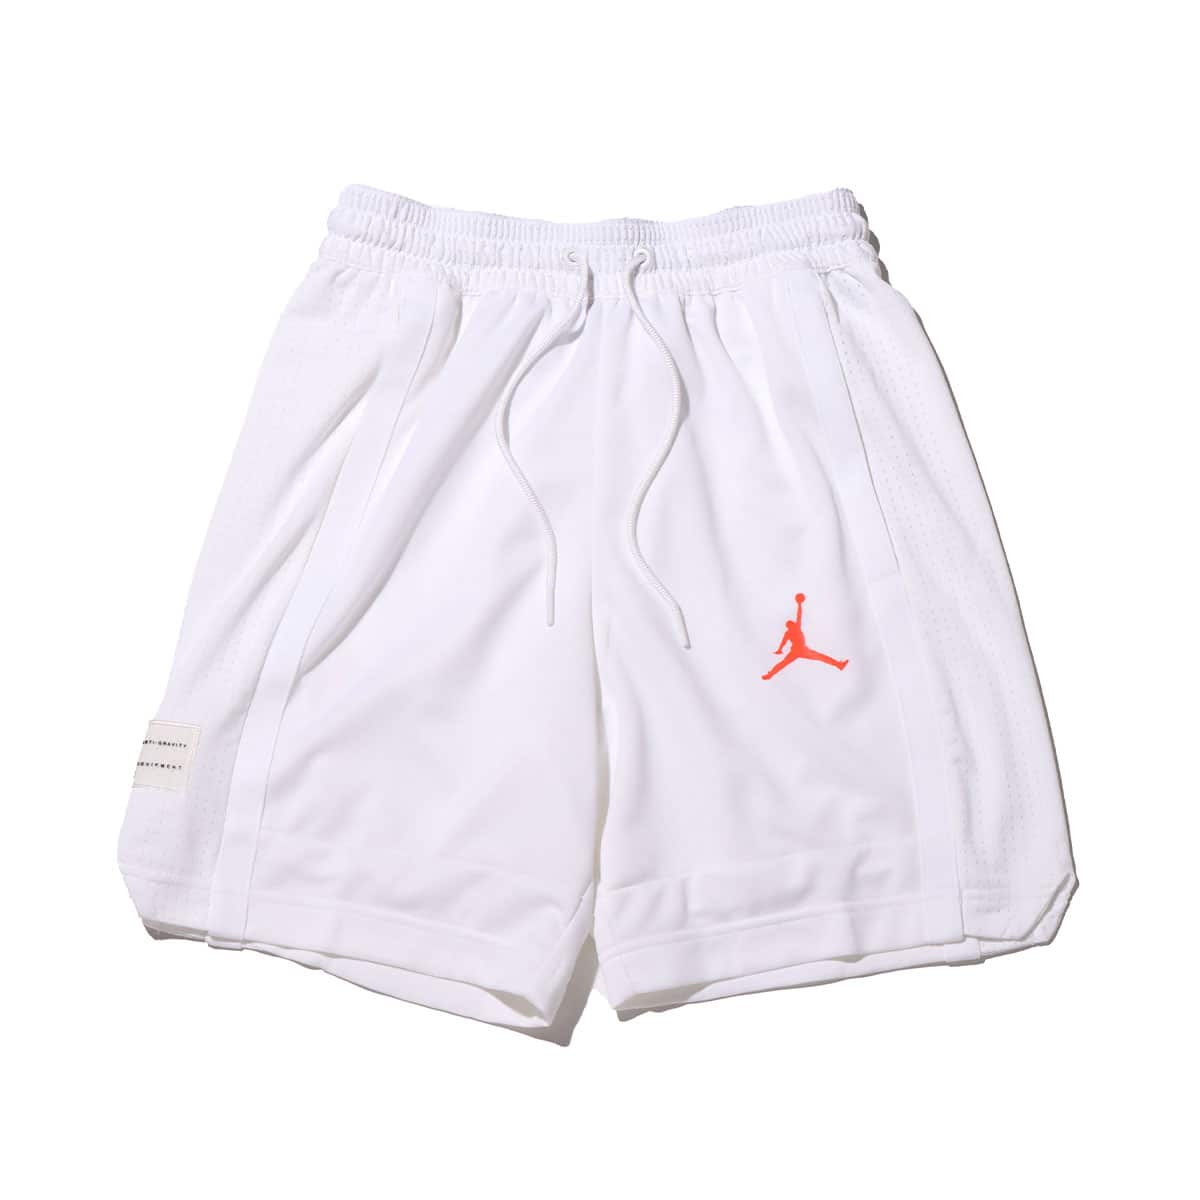 JORDAN BRAND AS M J AIR BBALL SHORT WHITE/WHITE/INFRARED 23 20FA-I_photo_large